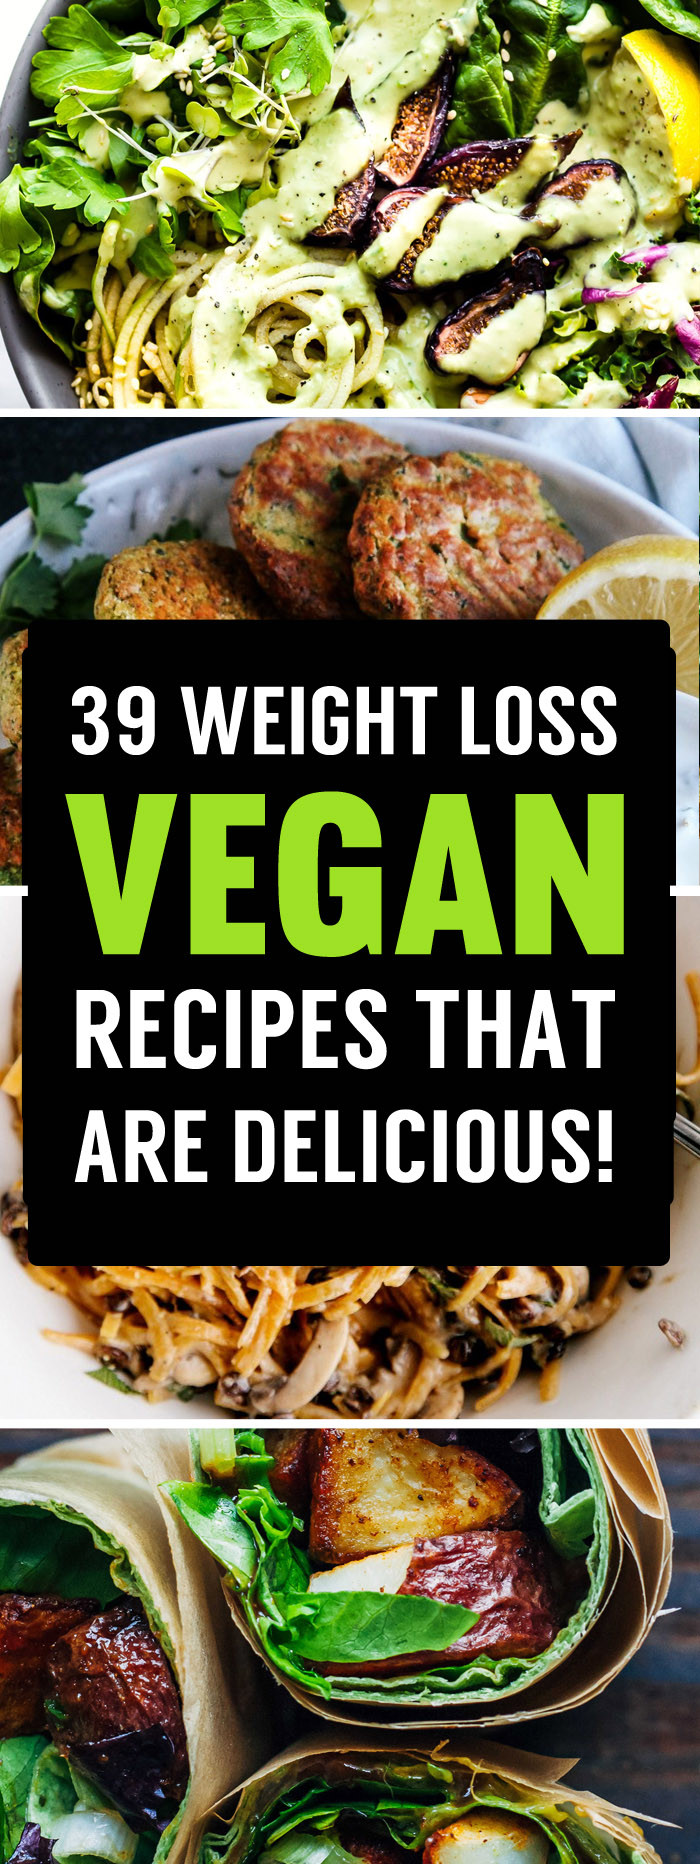 Healthy Meal Recipes For Weight Loss  39 Delicious Vegan Recipes That Are Perfect For Losing